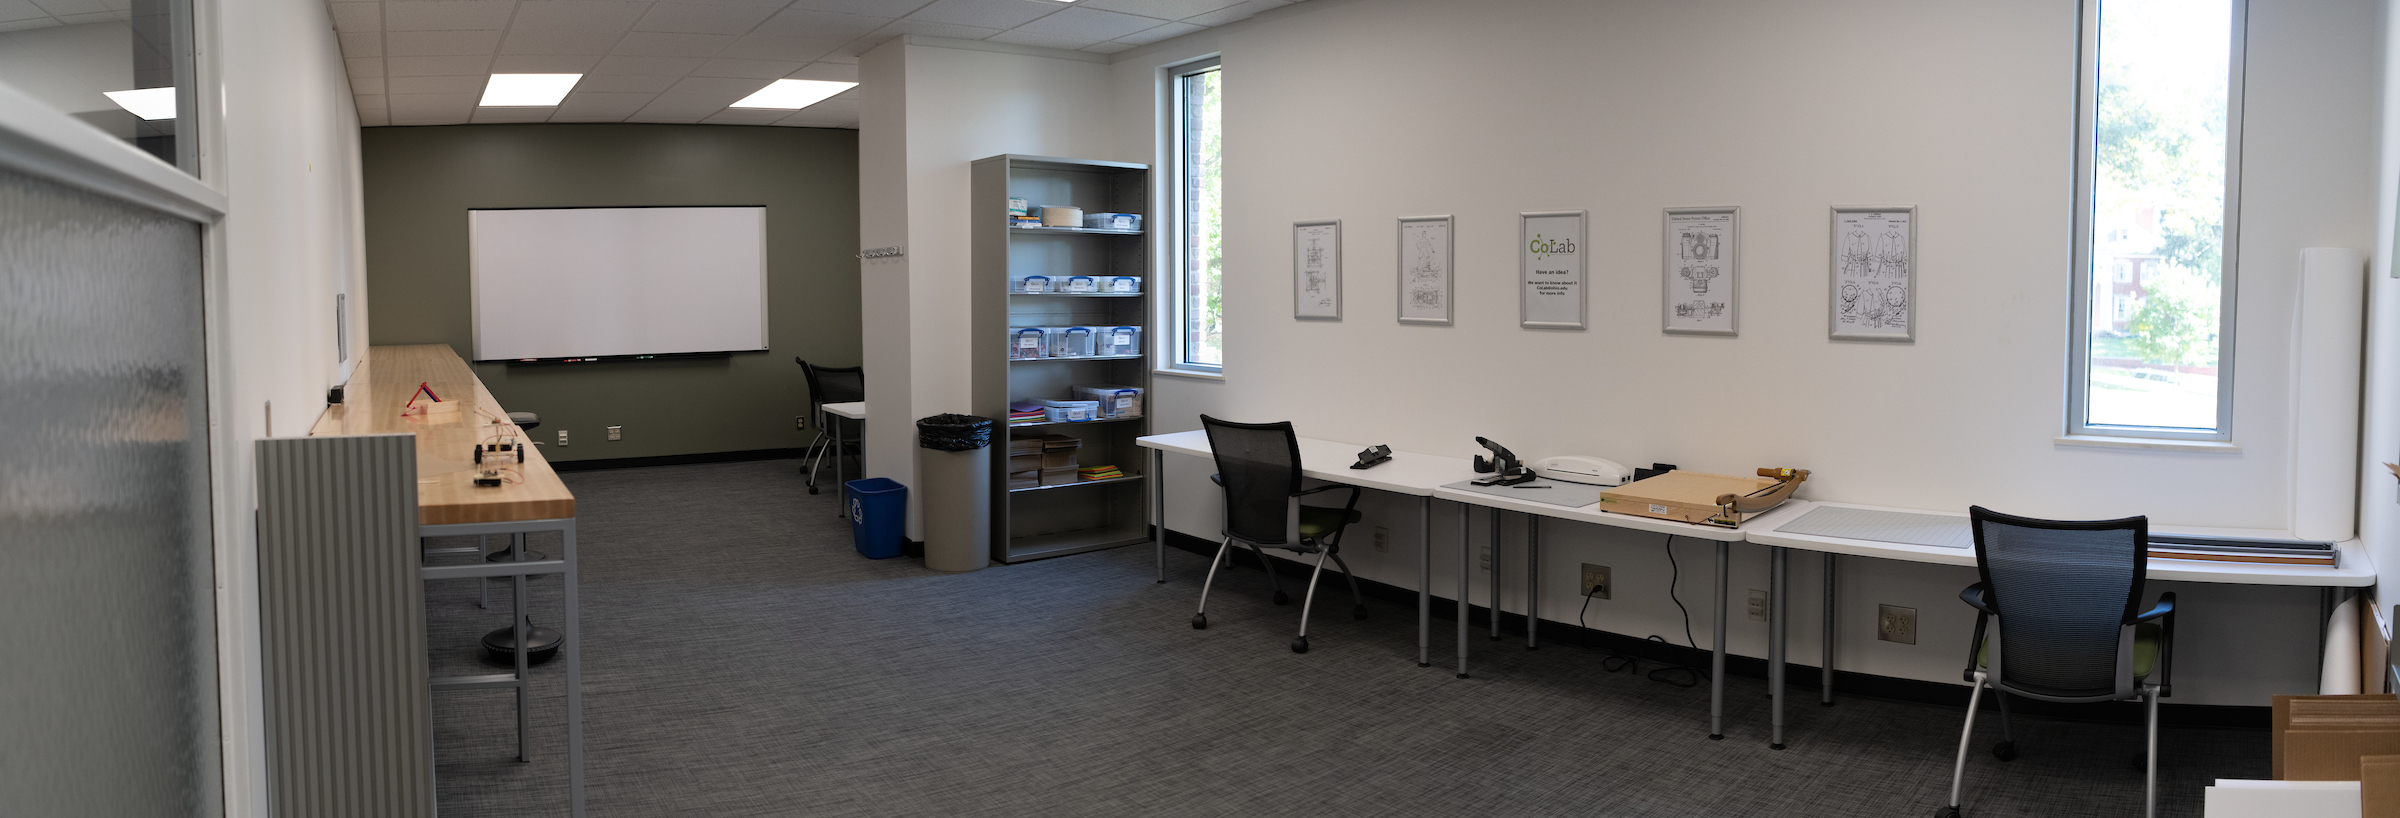 CoLab Maker Space